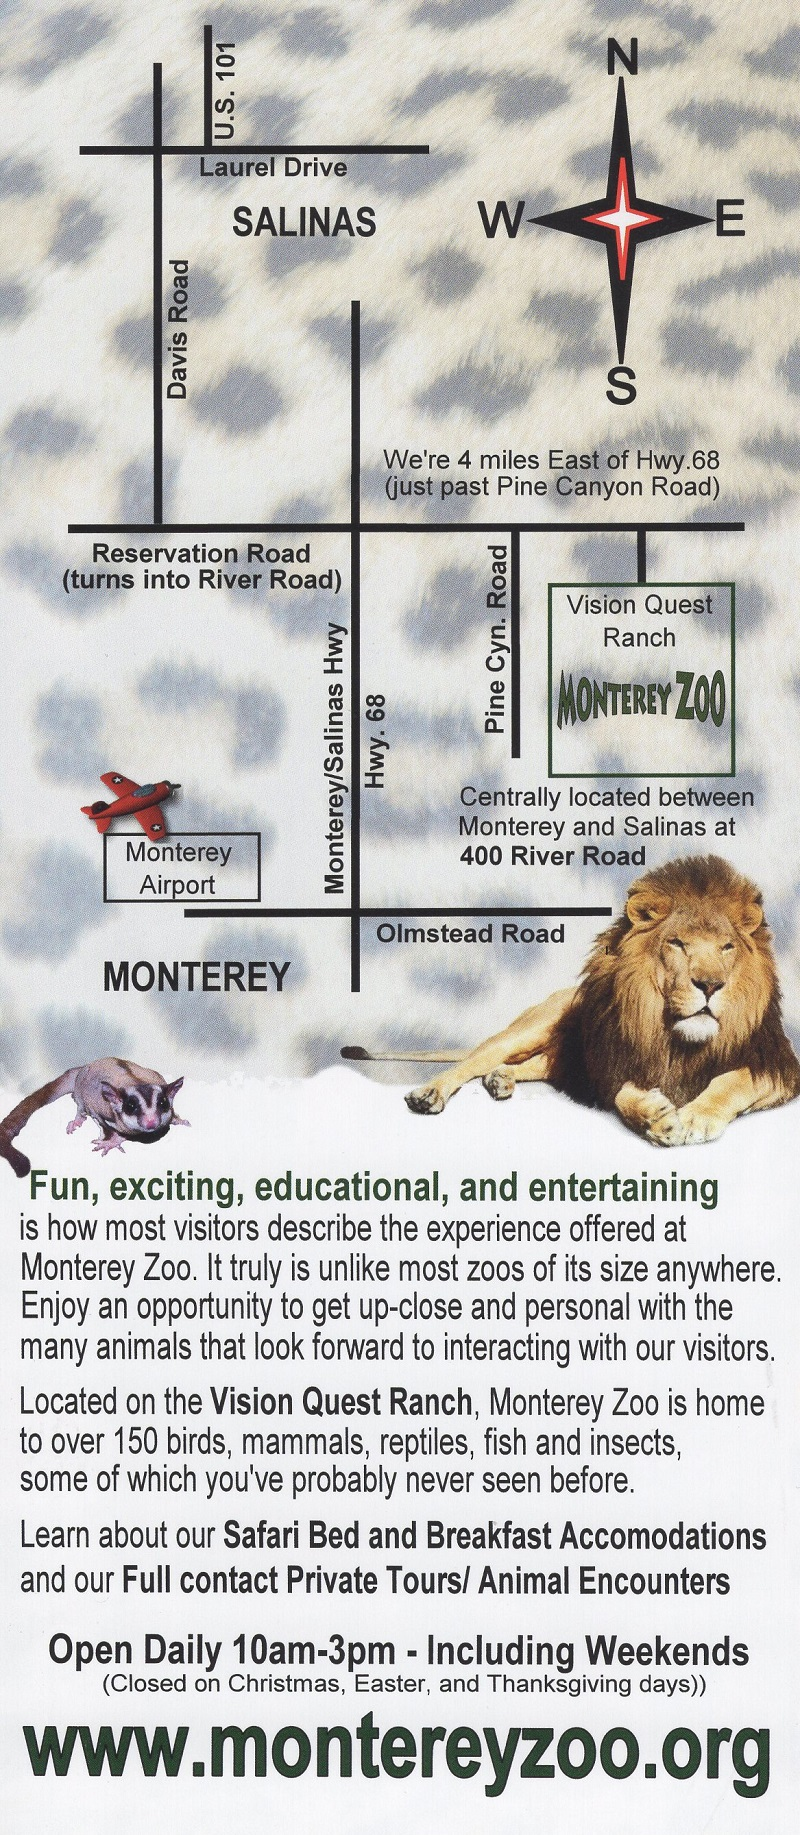 Monterey Zoo brochure full size